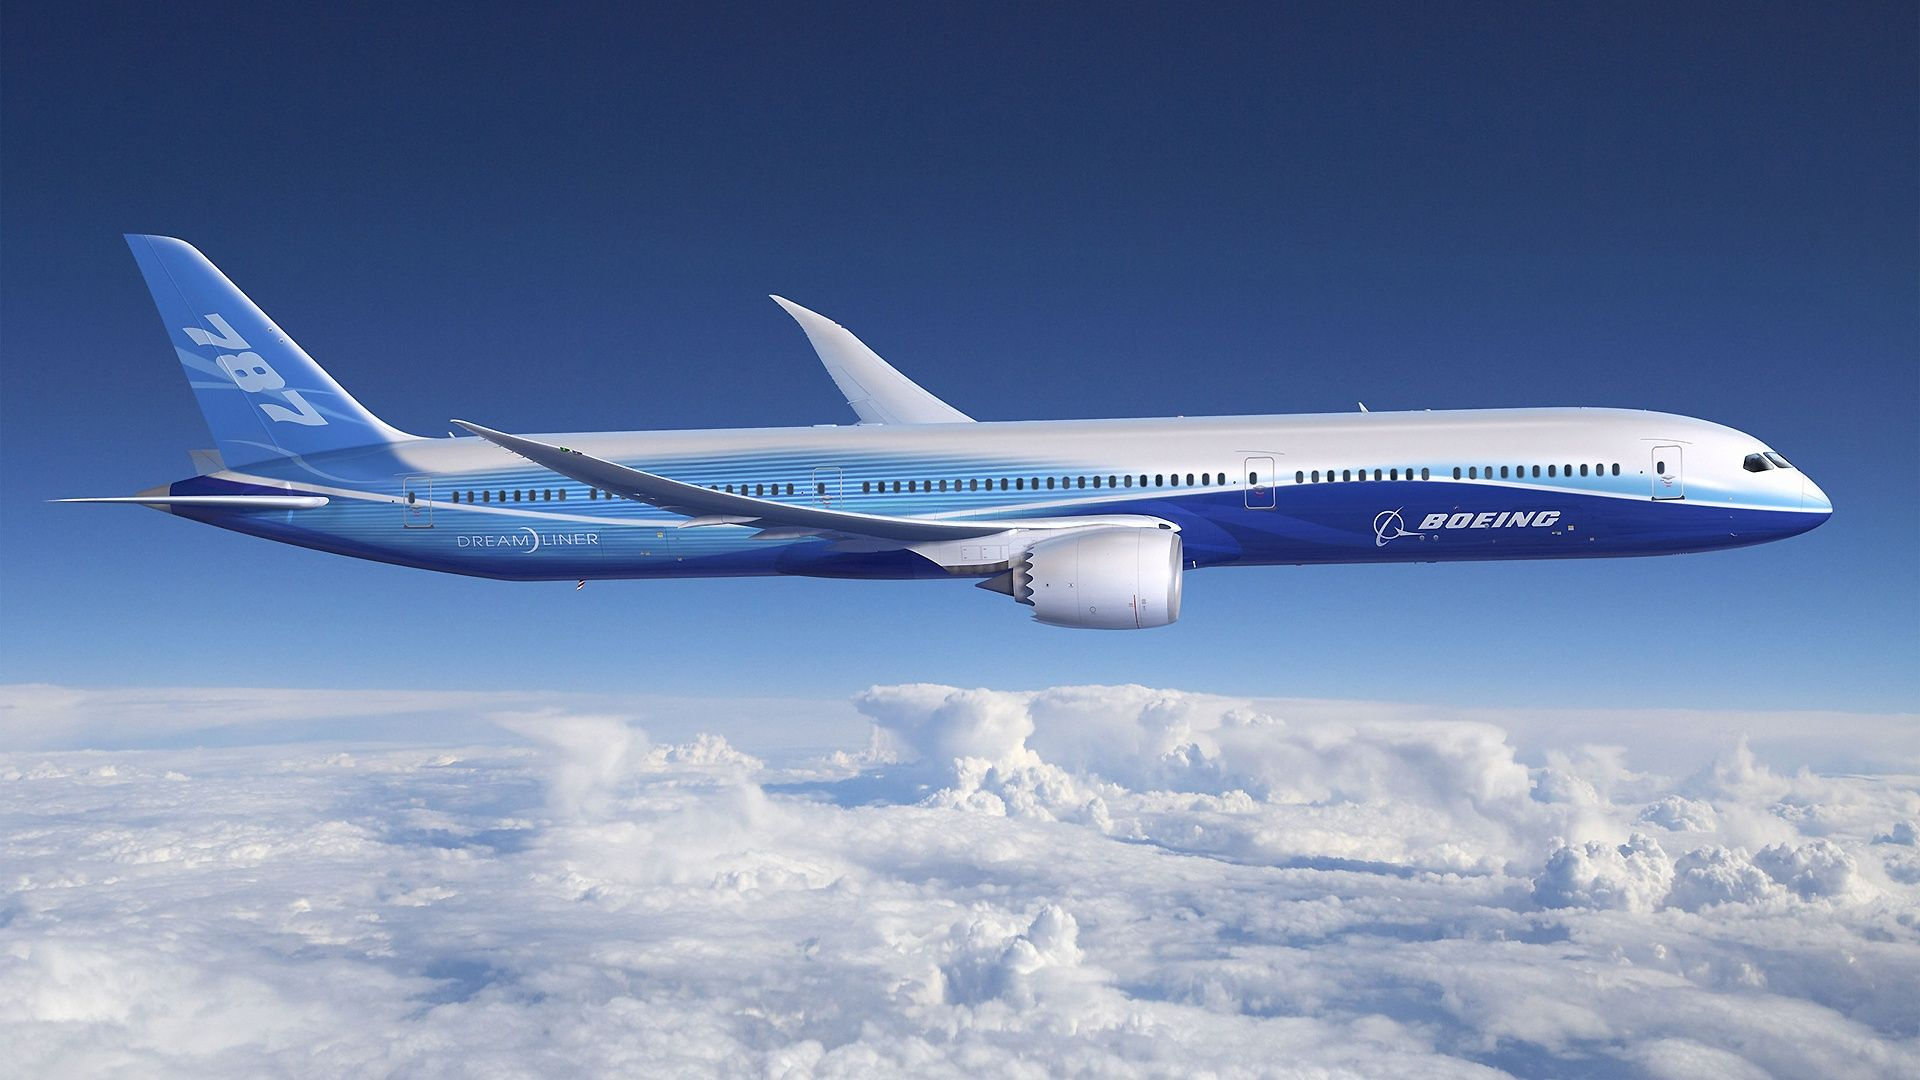 Commercial Airplane Images World Best Commercial Airplane